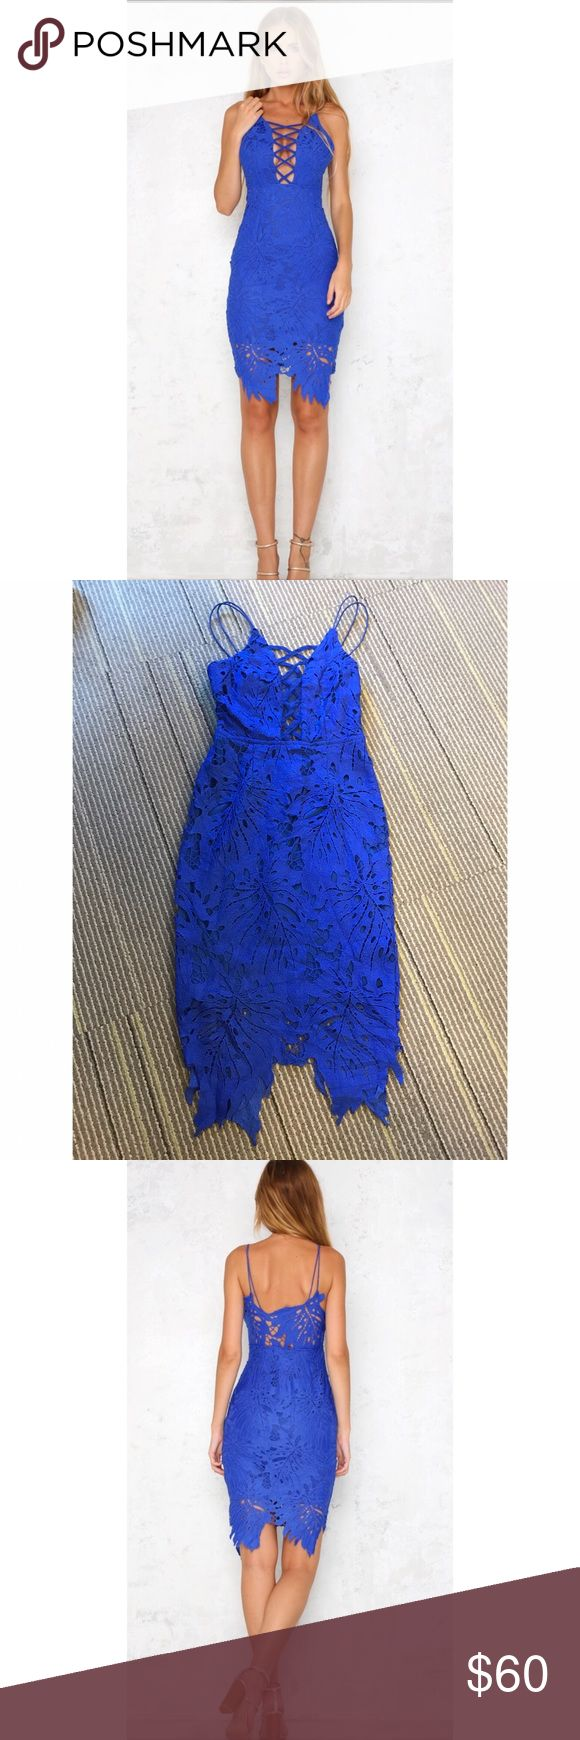 False Alarm Electric Blue Midi Dress False Alarm Midi Dress has a beautiful cut out front with criss-cross laces and supported elastic straps. Semi sheer lace back and an invisible viper on the side. True to size, partially lined. Model wearing XS. Dresses Midi